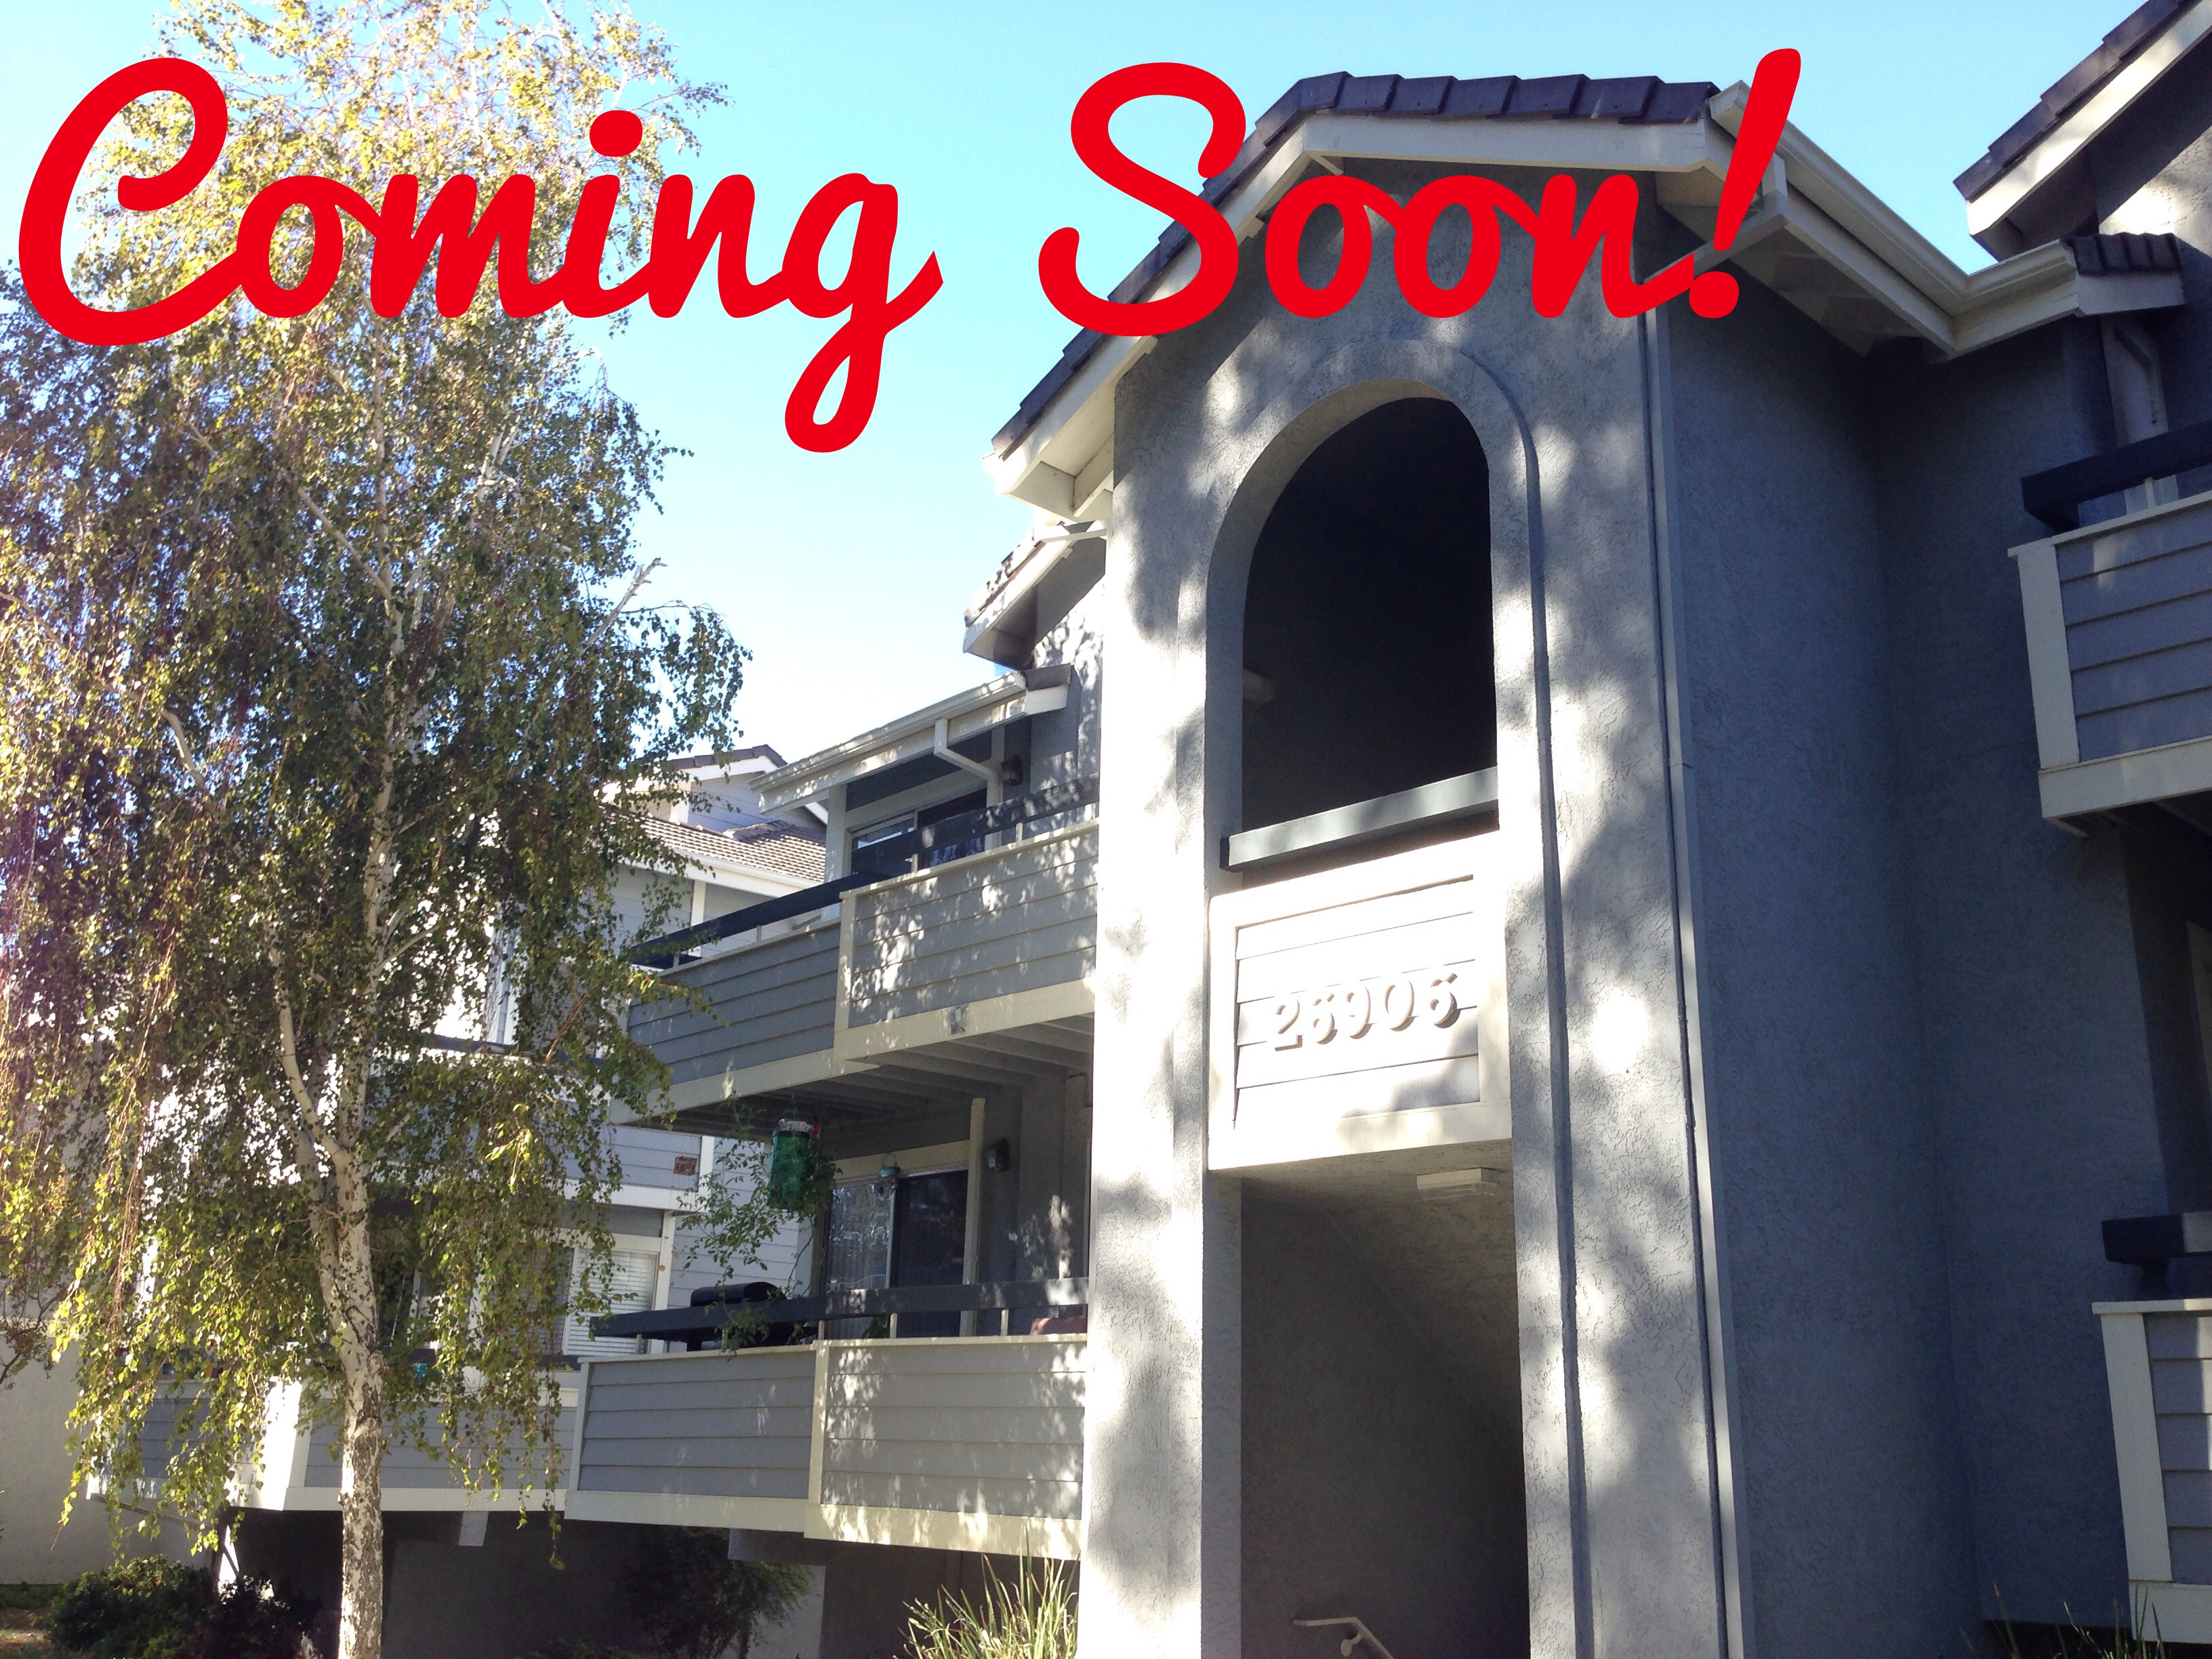 Coming Soon! Canyon Country 2 Bedroom Condo With Loft For 219k!